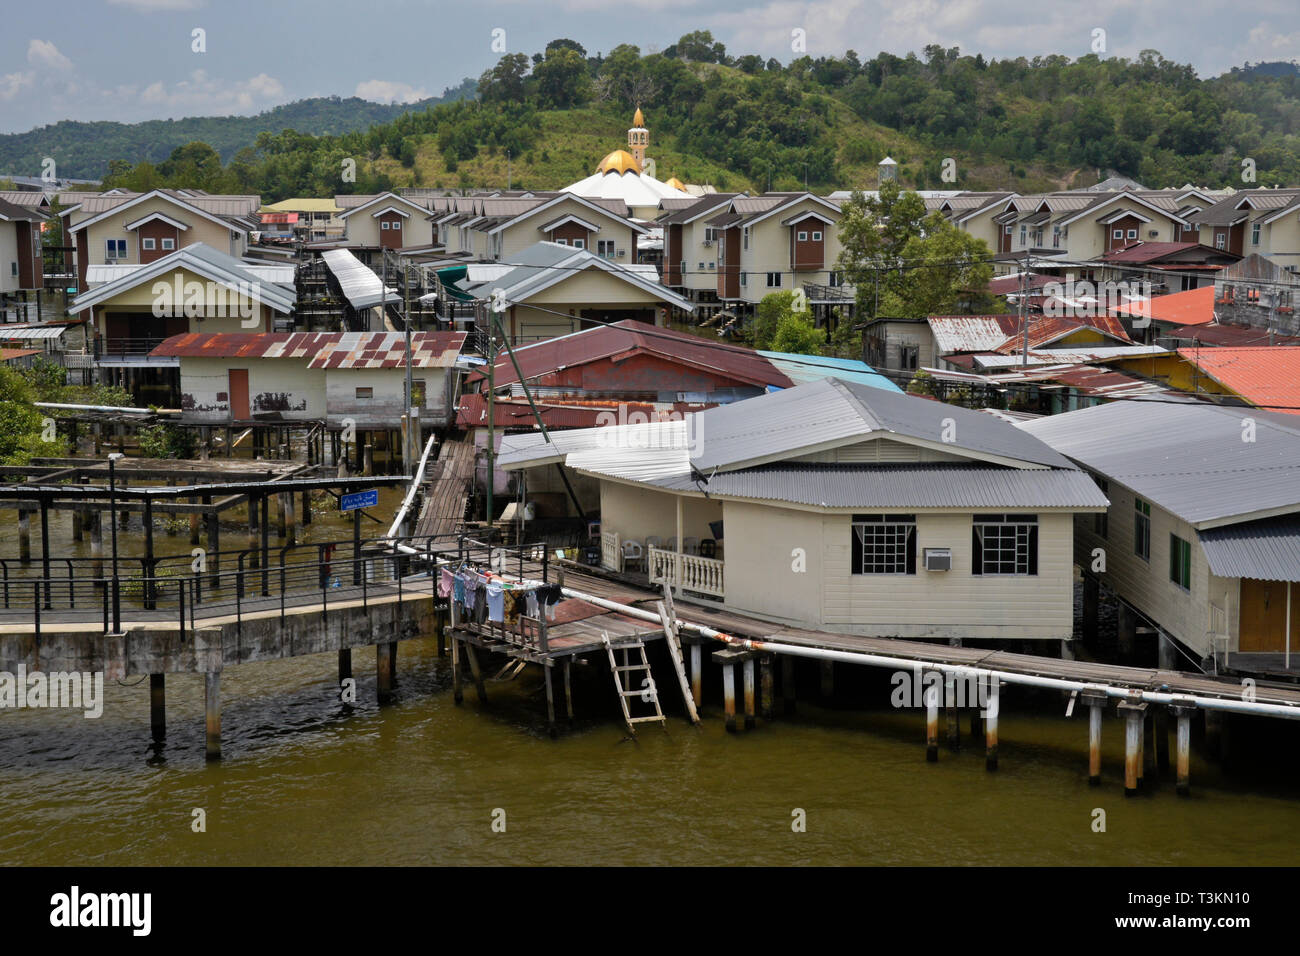 Kampong (Kampung) Ayer water village on Brunei River, Bandar Seri Begawan, Sultanate of Brunei - Stock Image